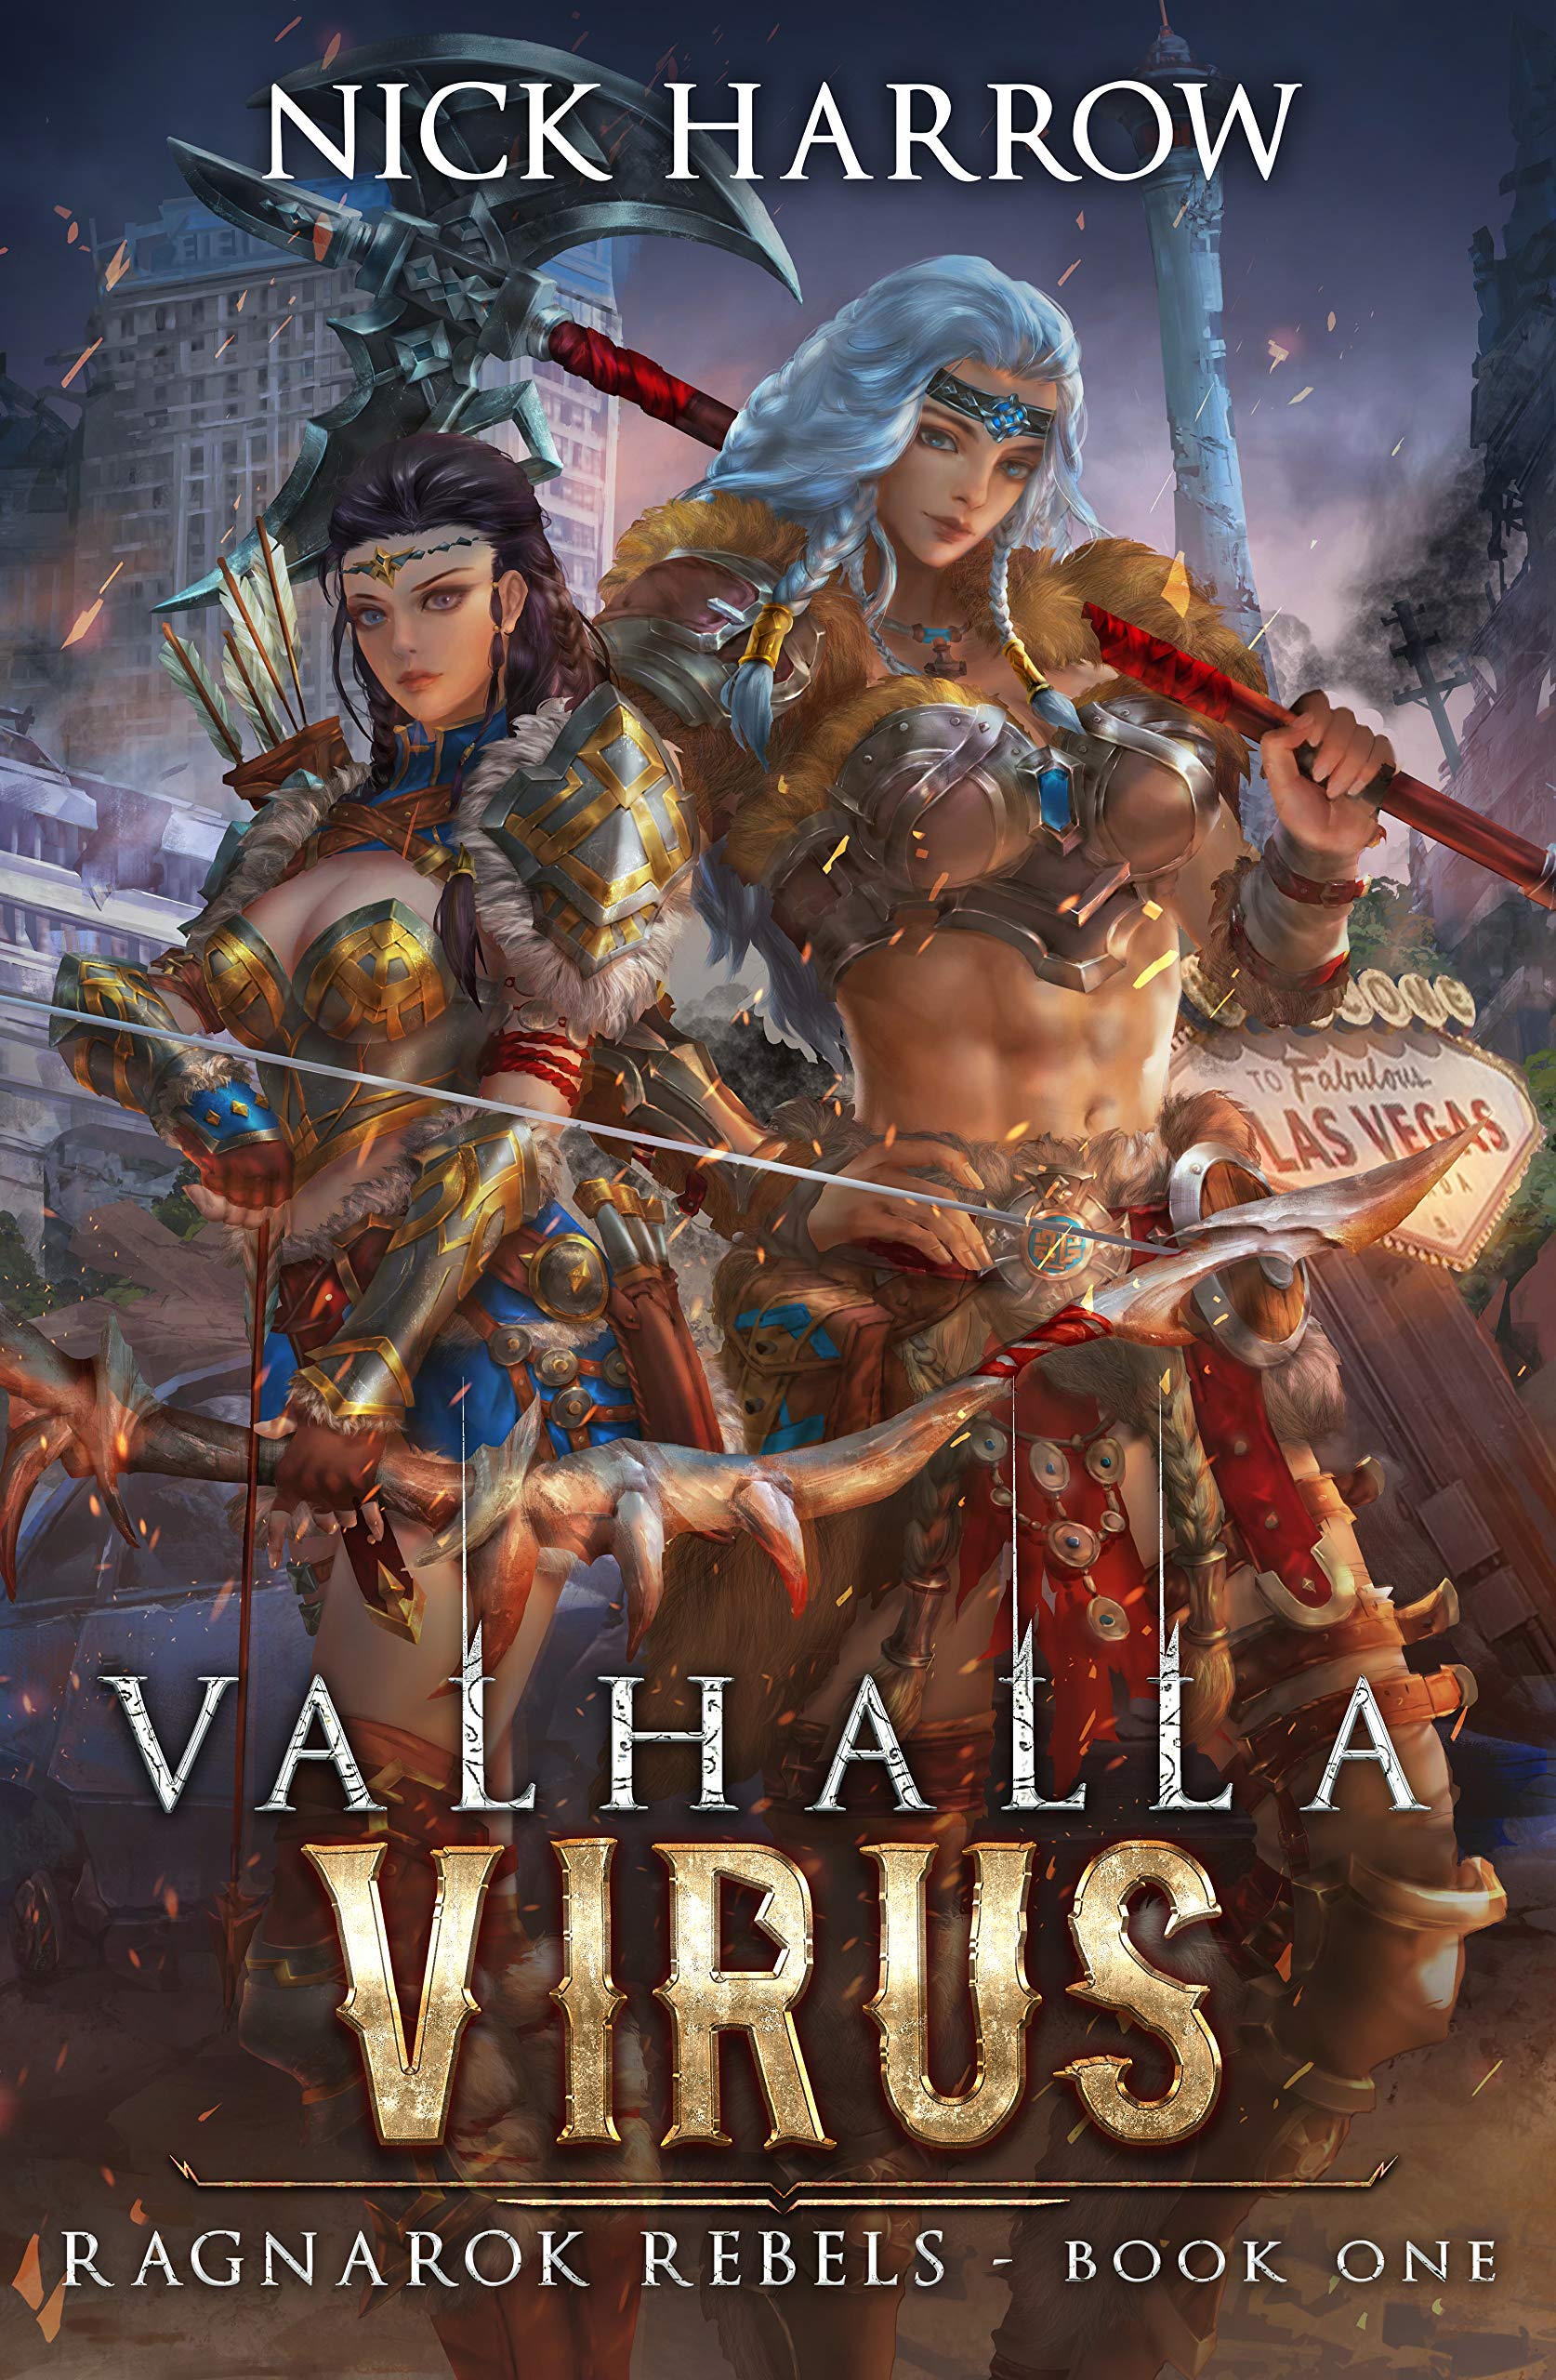 Valhalla Virus: A Fantasy Harem Adventure (Ragnarok Rebels Book 1)